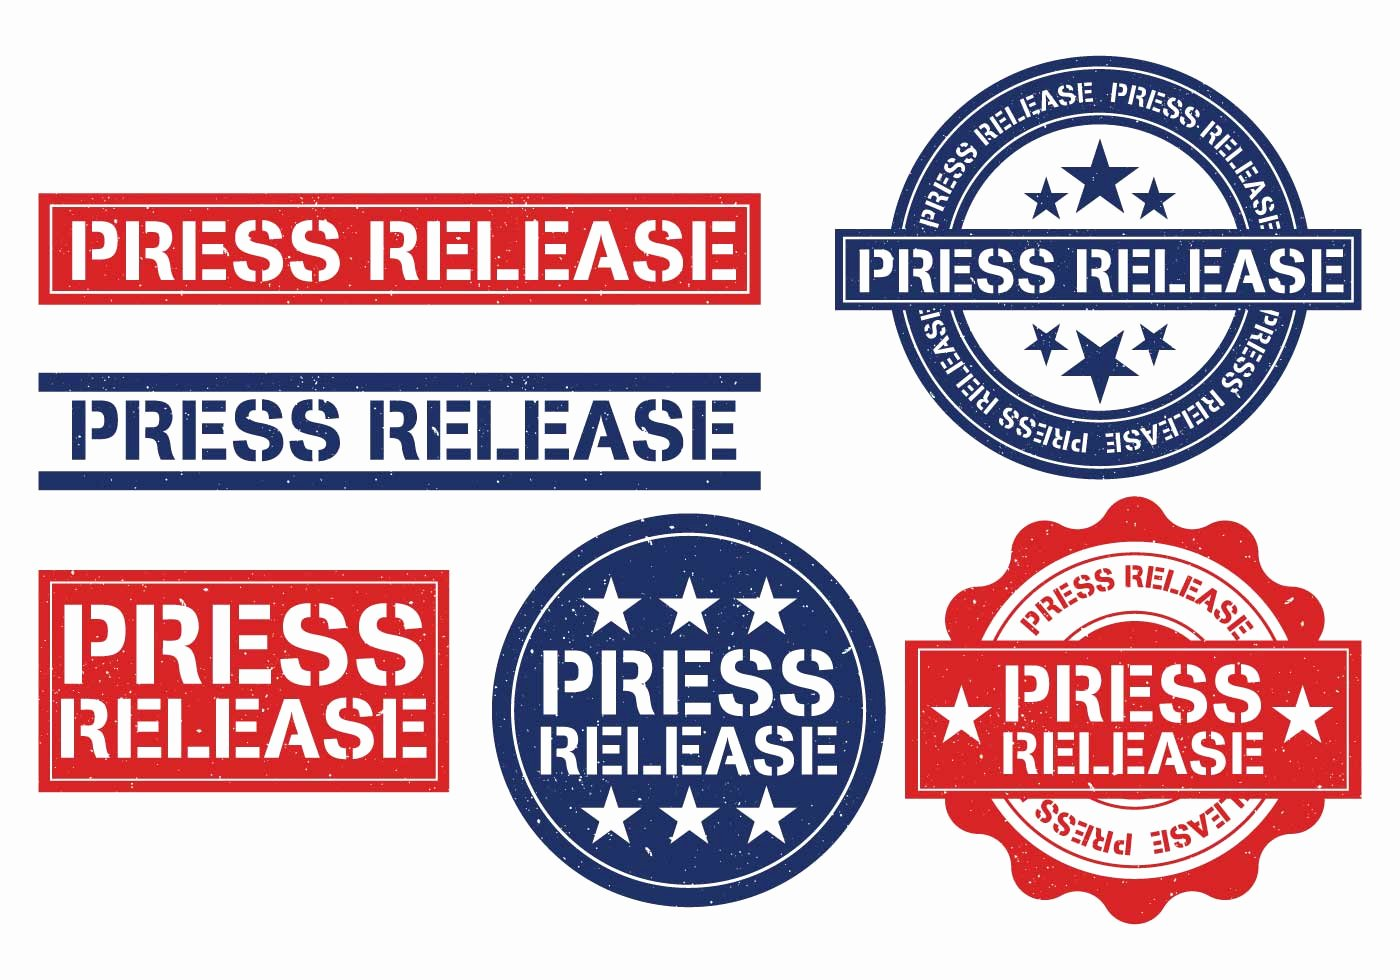 Concert Press Release Template Awesome Press Release Stamp Vector Download Free Vector Art